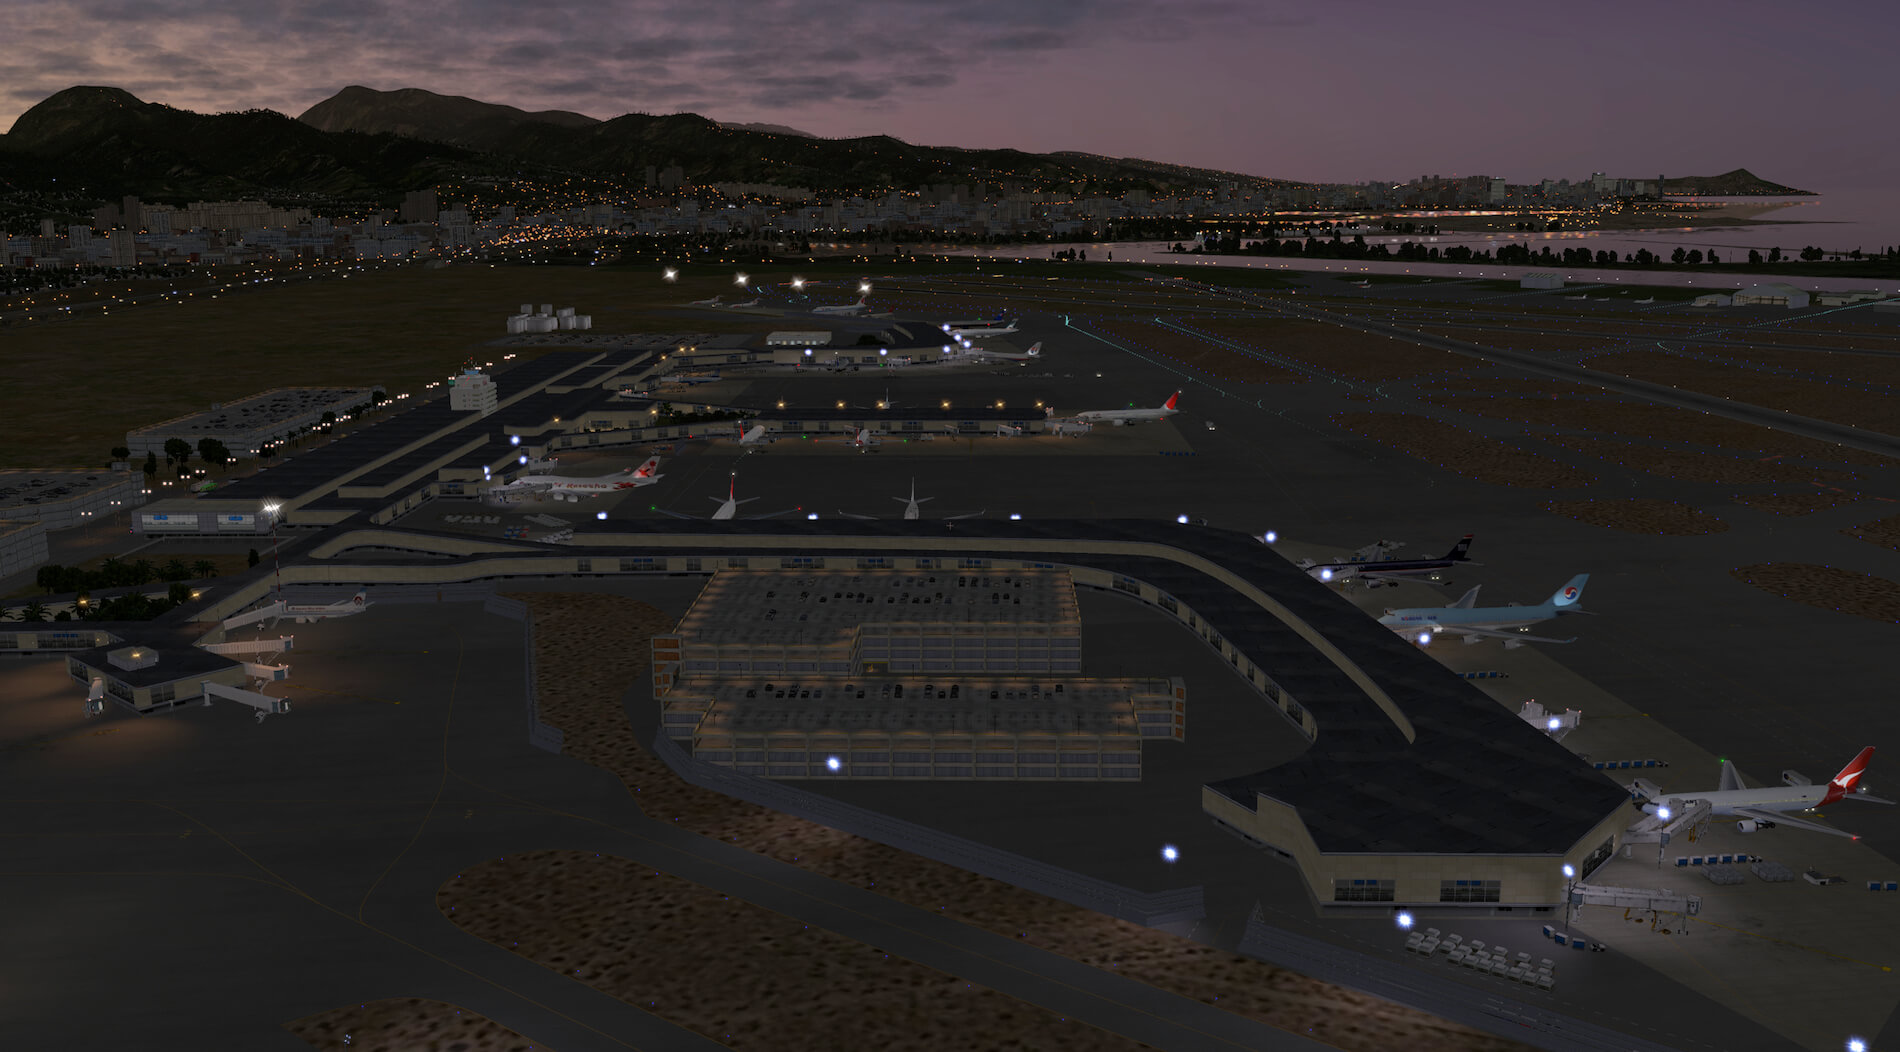 Haui-Honolulu-Intl-Airport-22